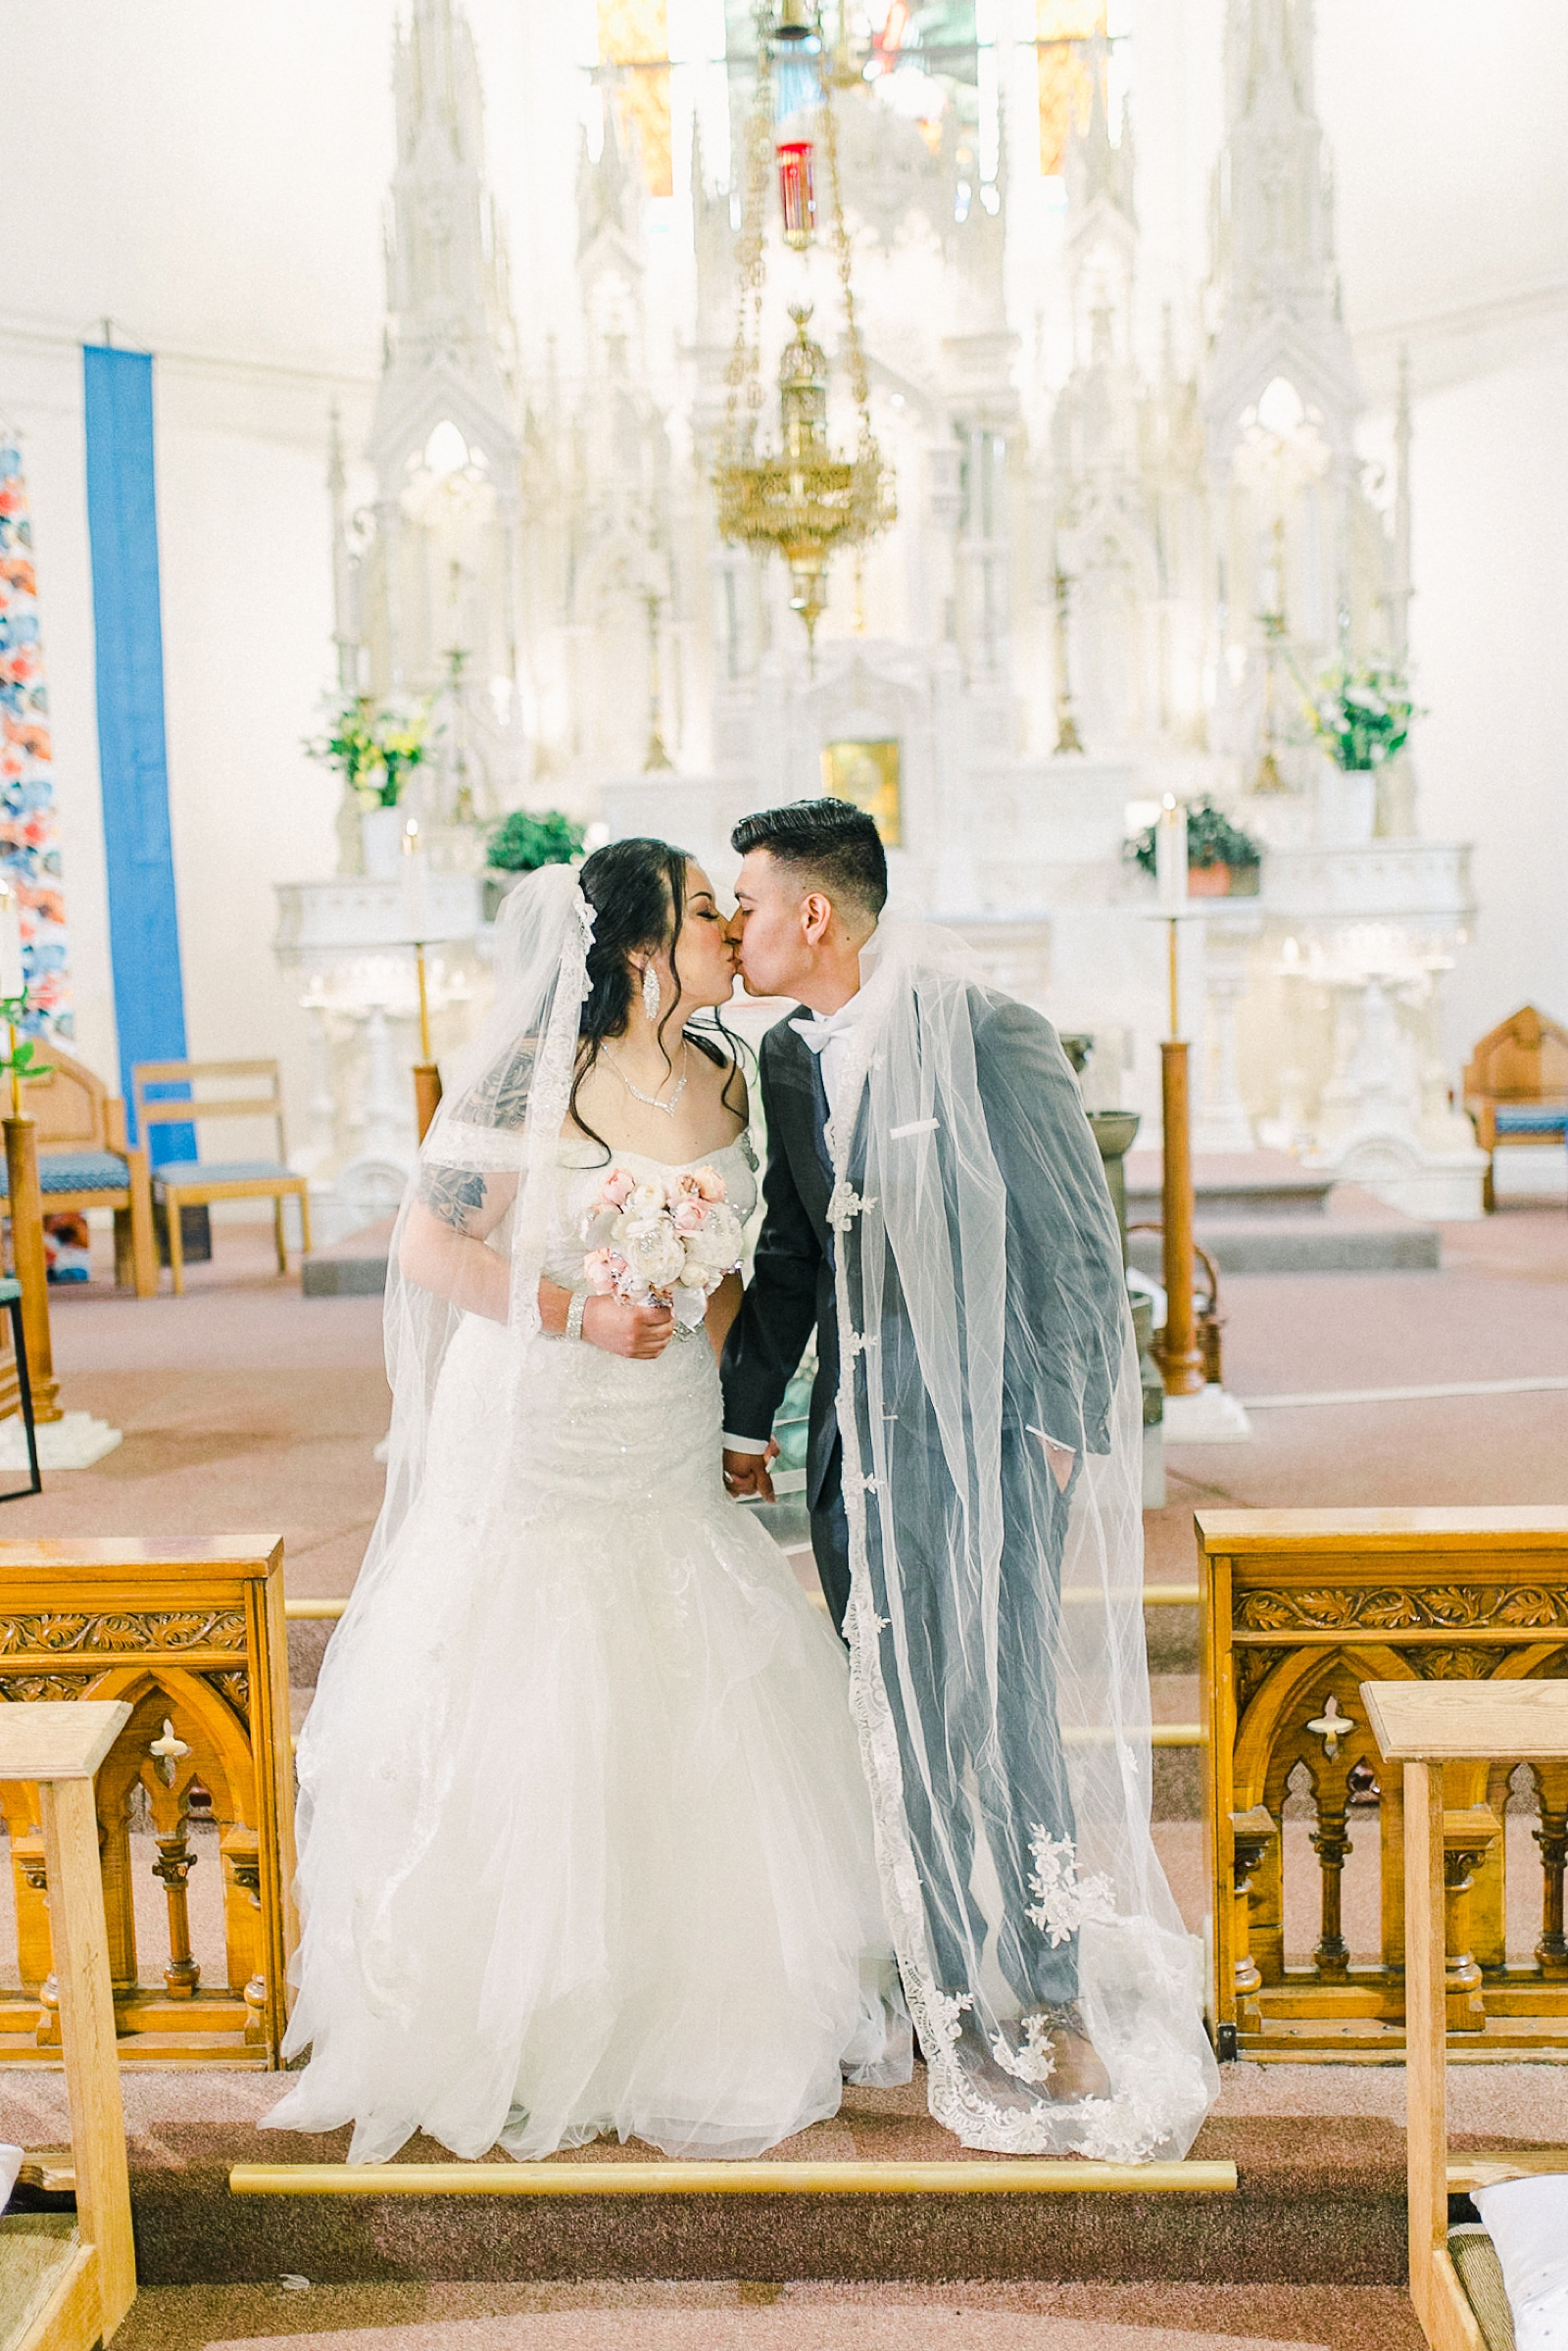 Cache Valley Logan Traditional Catholic Wedding Ceremony in a cathedral, Utah wedding photography, first kiss